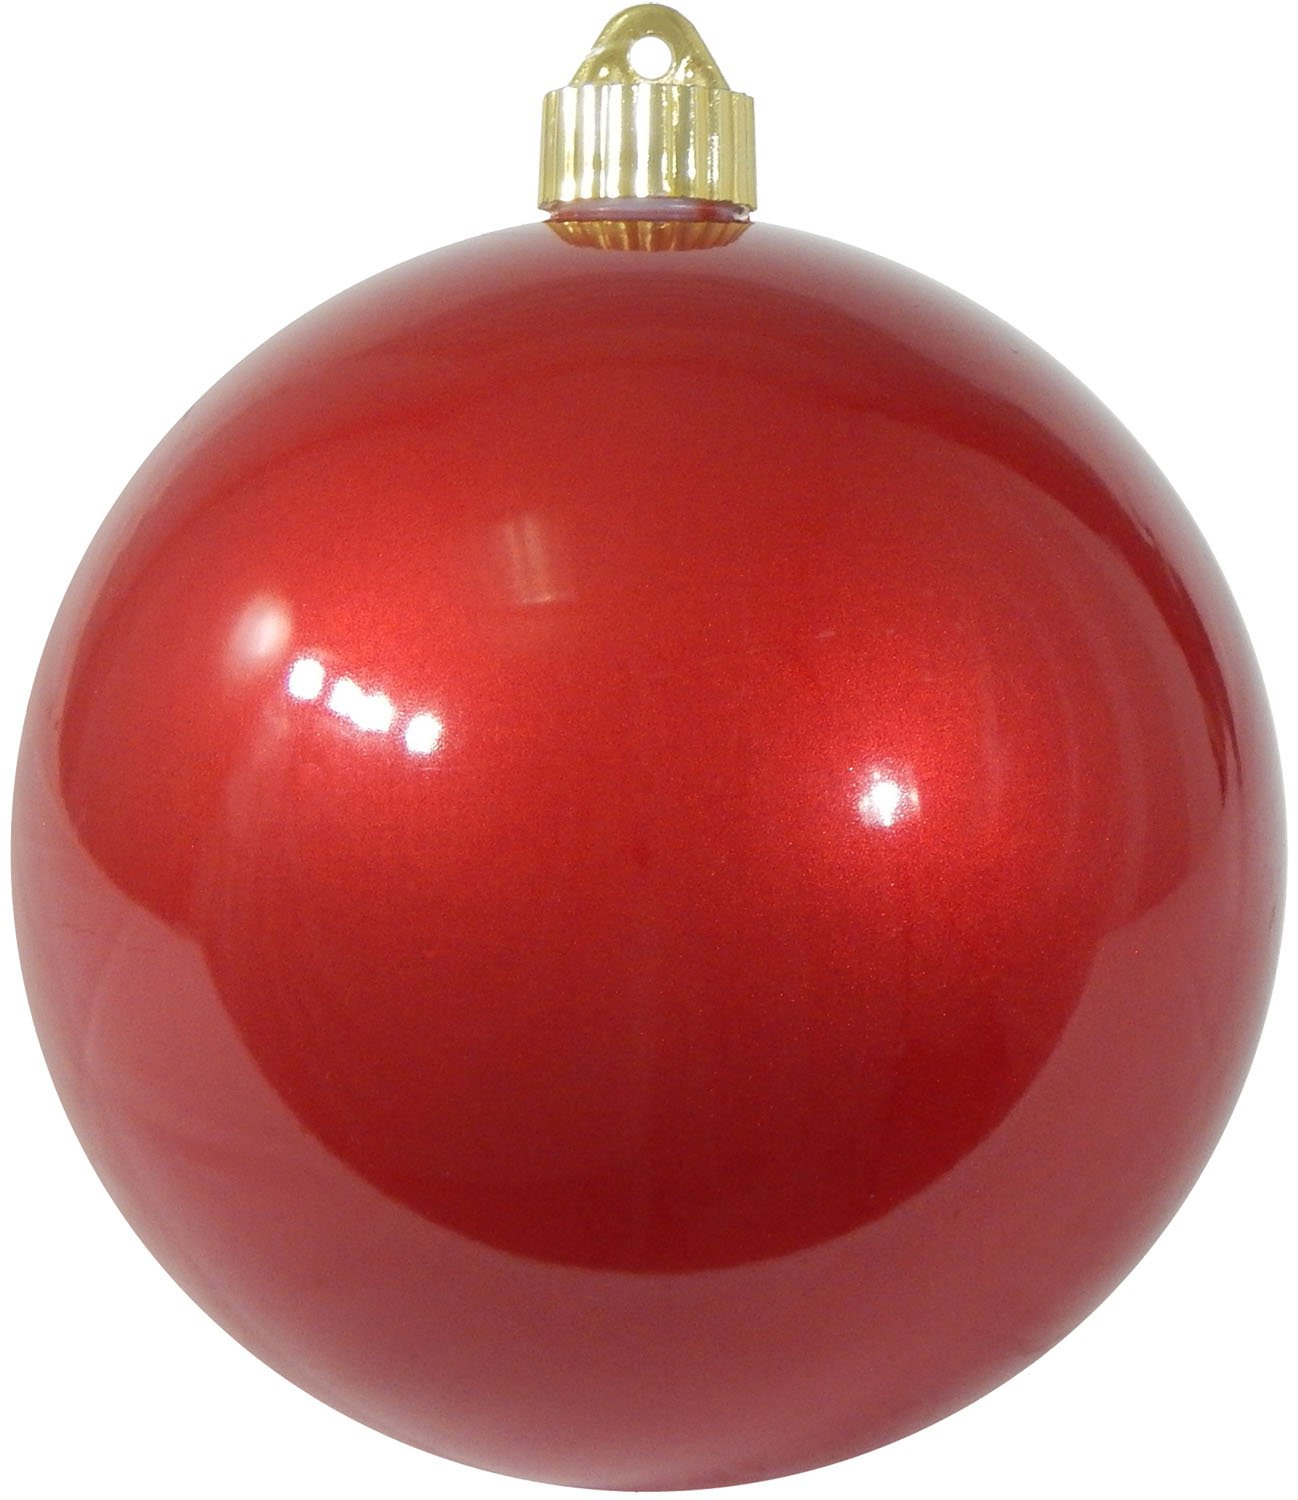 Christmas By Krebs CBK72954 Shatterproof UV-Resistant Christmas Ball Ornaments 6'' Candy Red 12 Piece